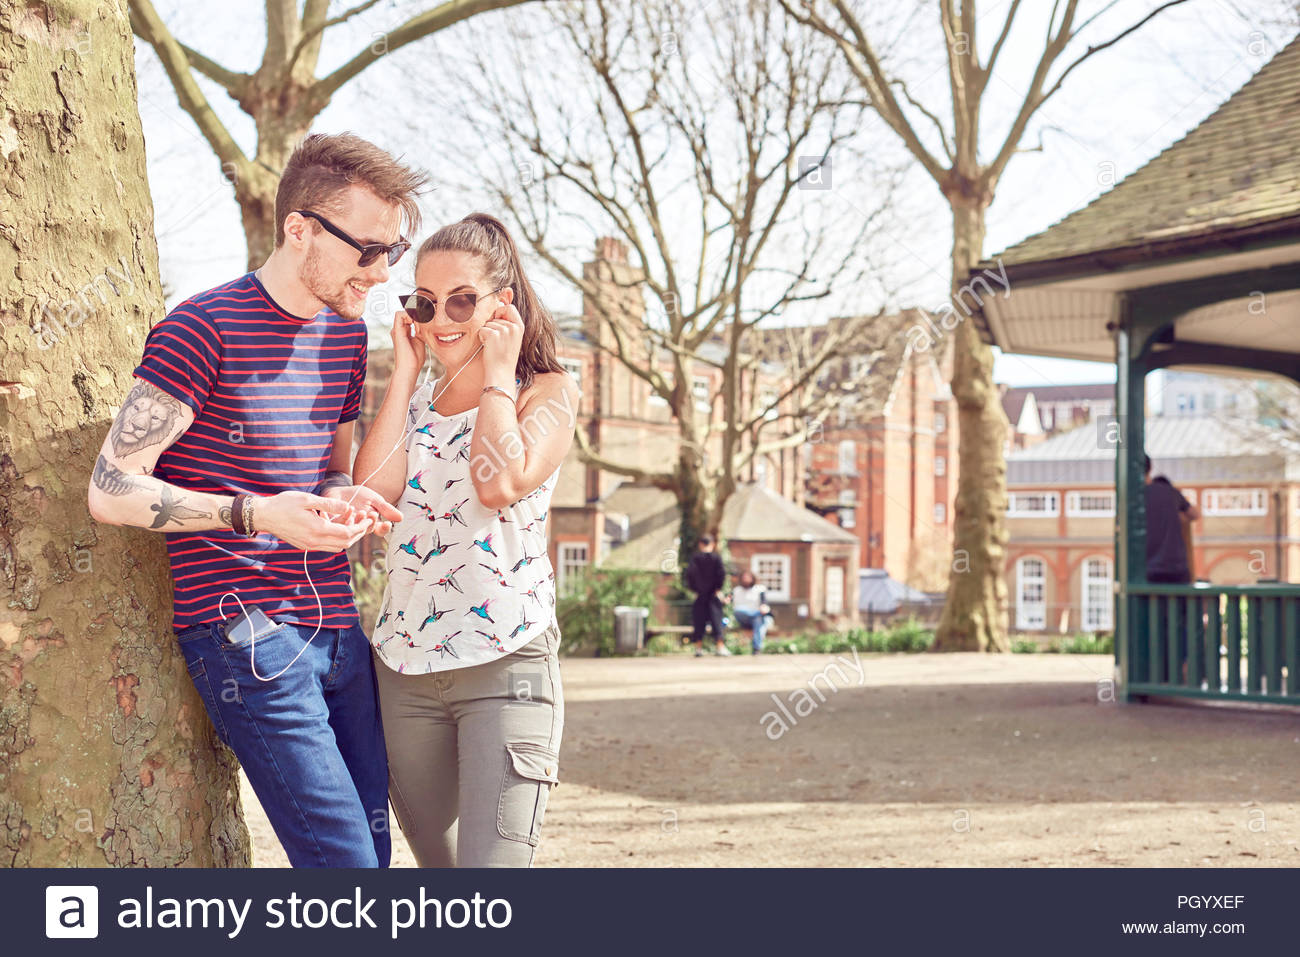 Teenage couple sharing music in park - Stock Image